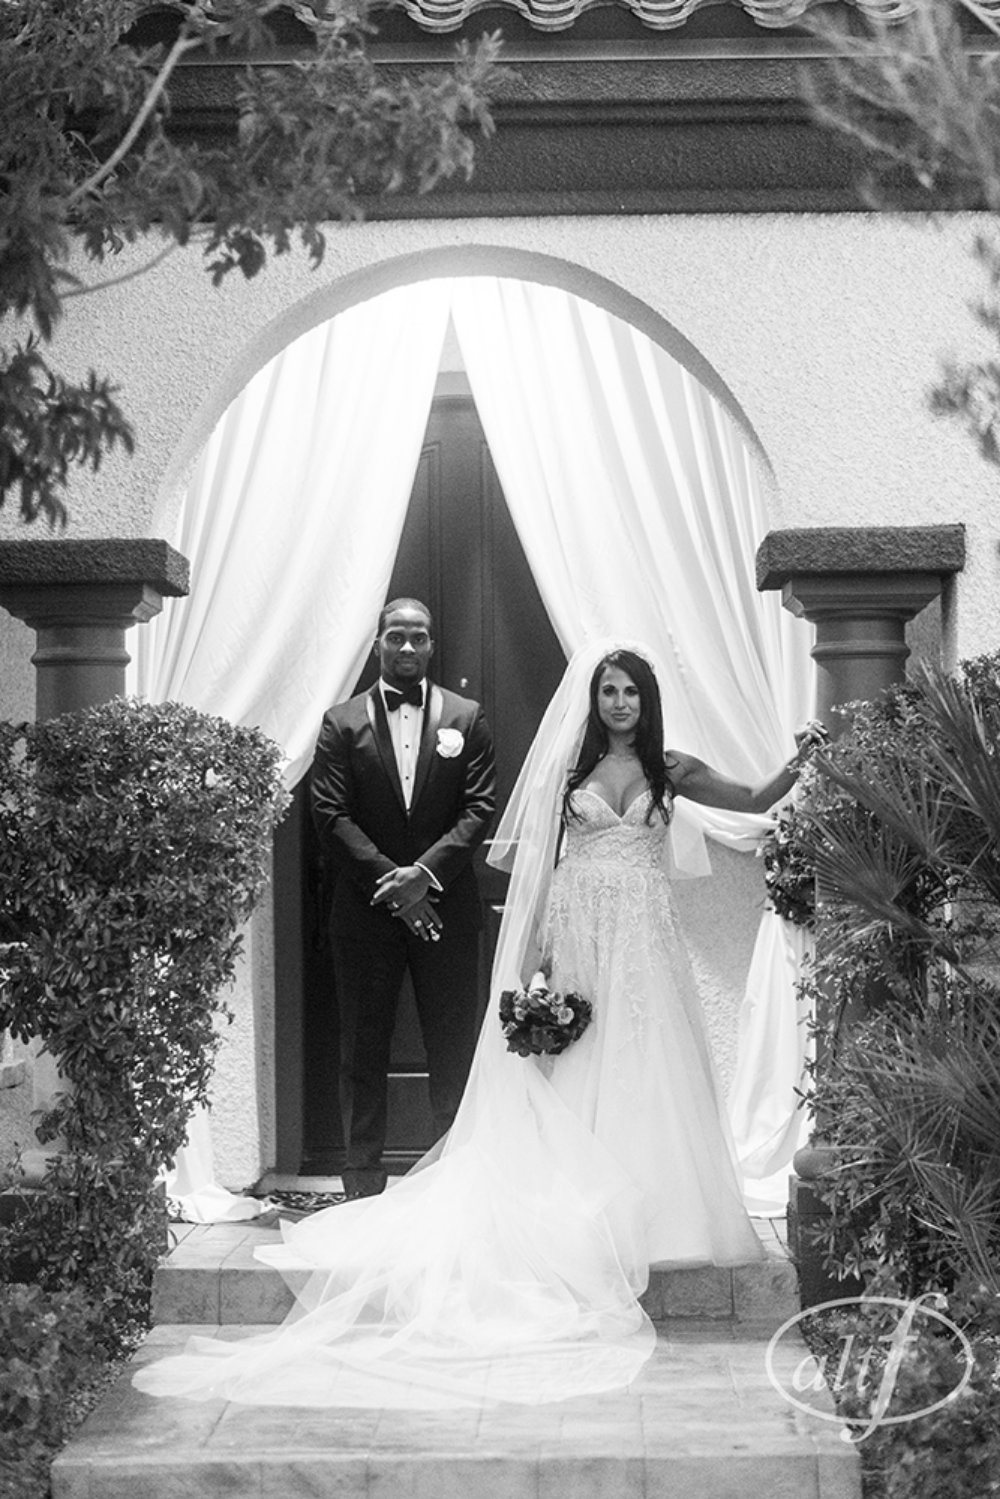 Black and White Couple Portrait Las Vegas Wedding Planner Andrea Eppolito.  Image by Altf.com..